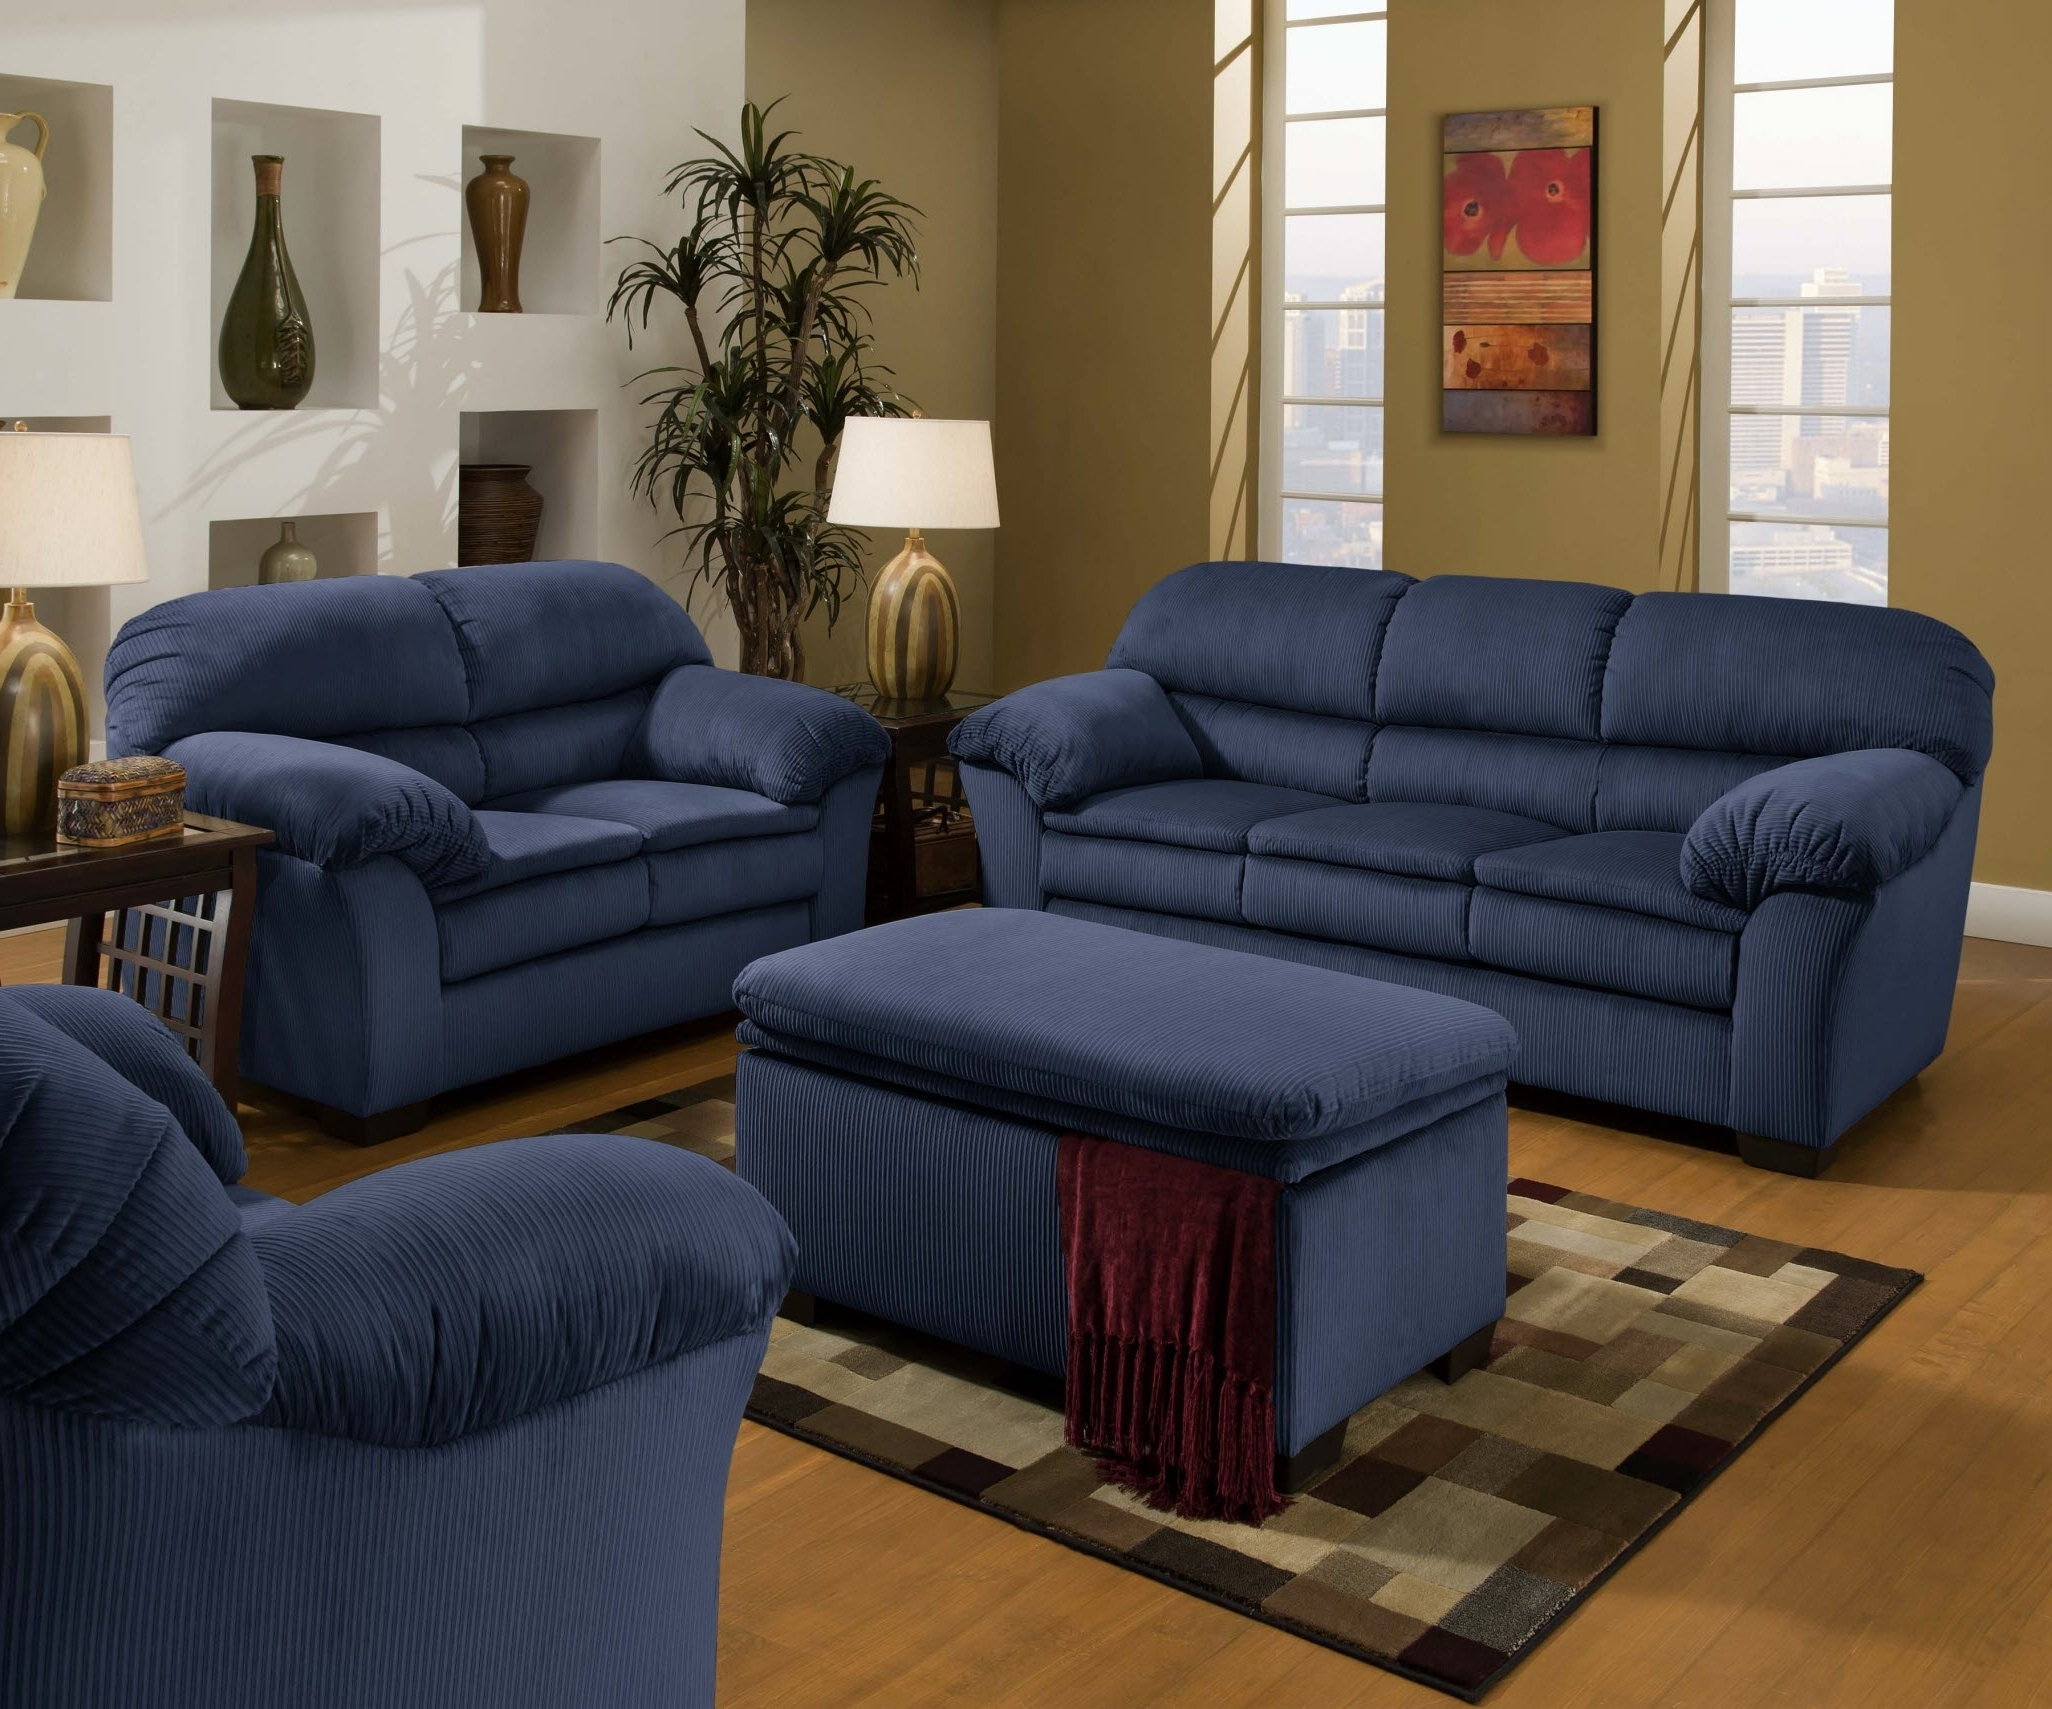 Trendy Popular Sectional Sofas Las Vegas 22 For Black Microfiber Within Las Vegas Sectional Sofas (View 4 of 15)